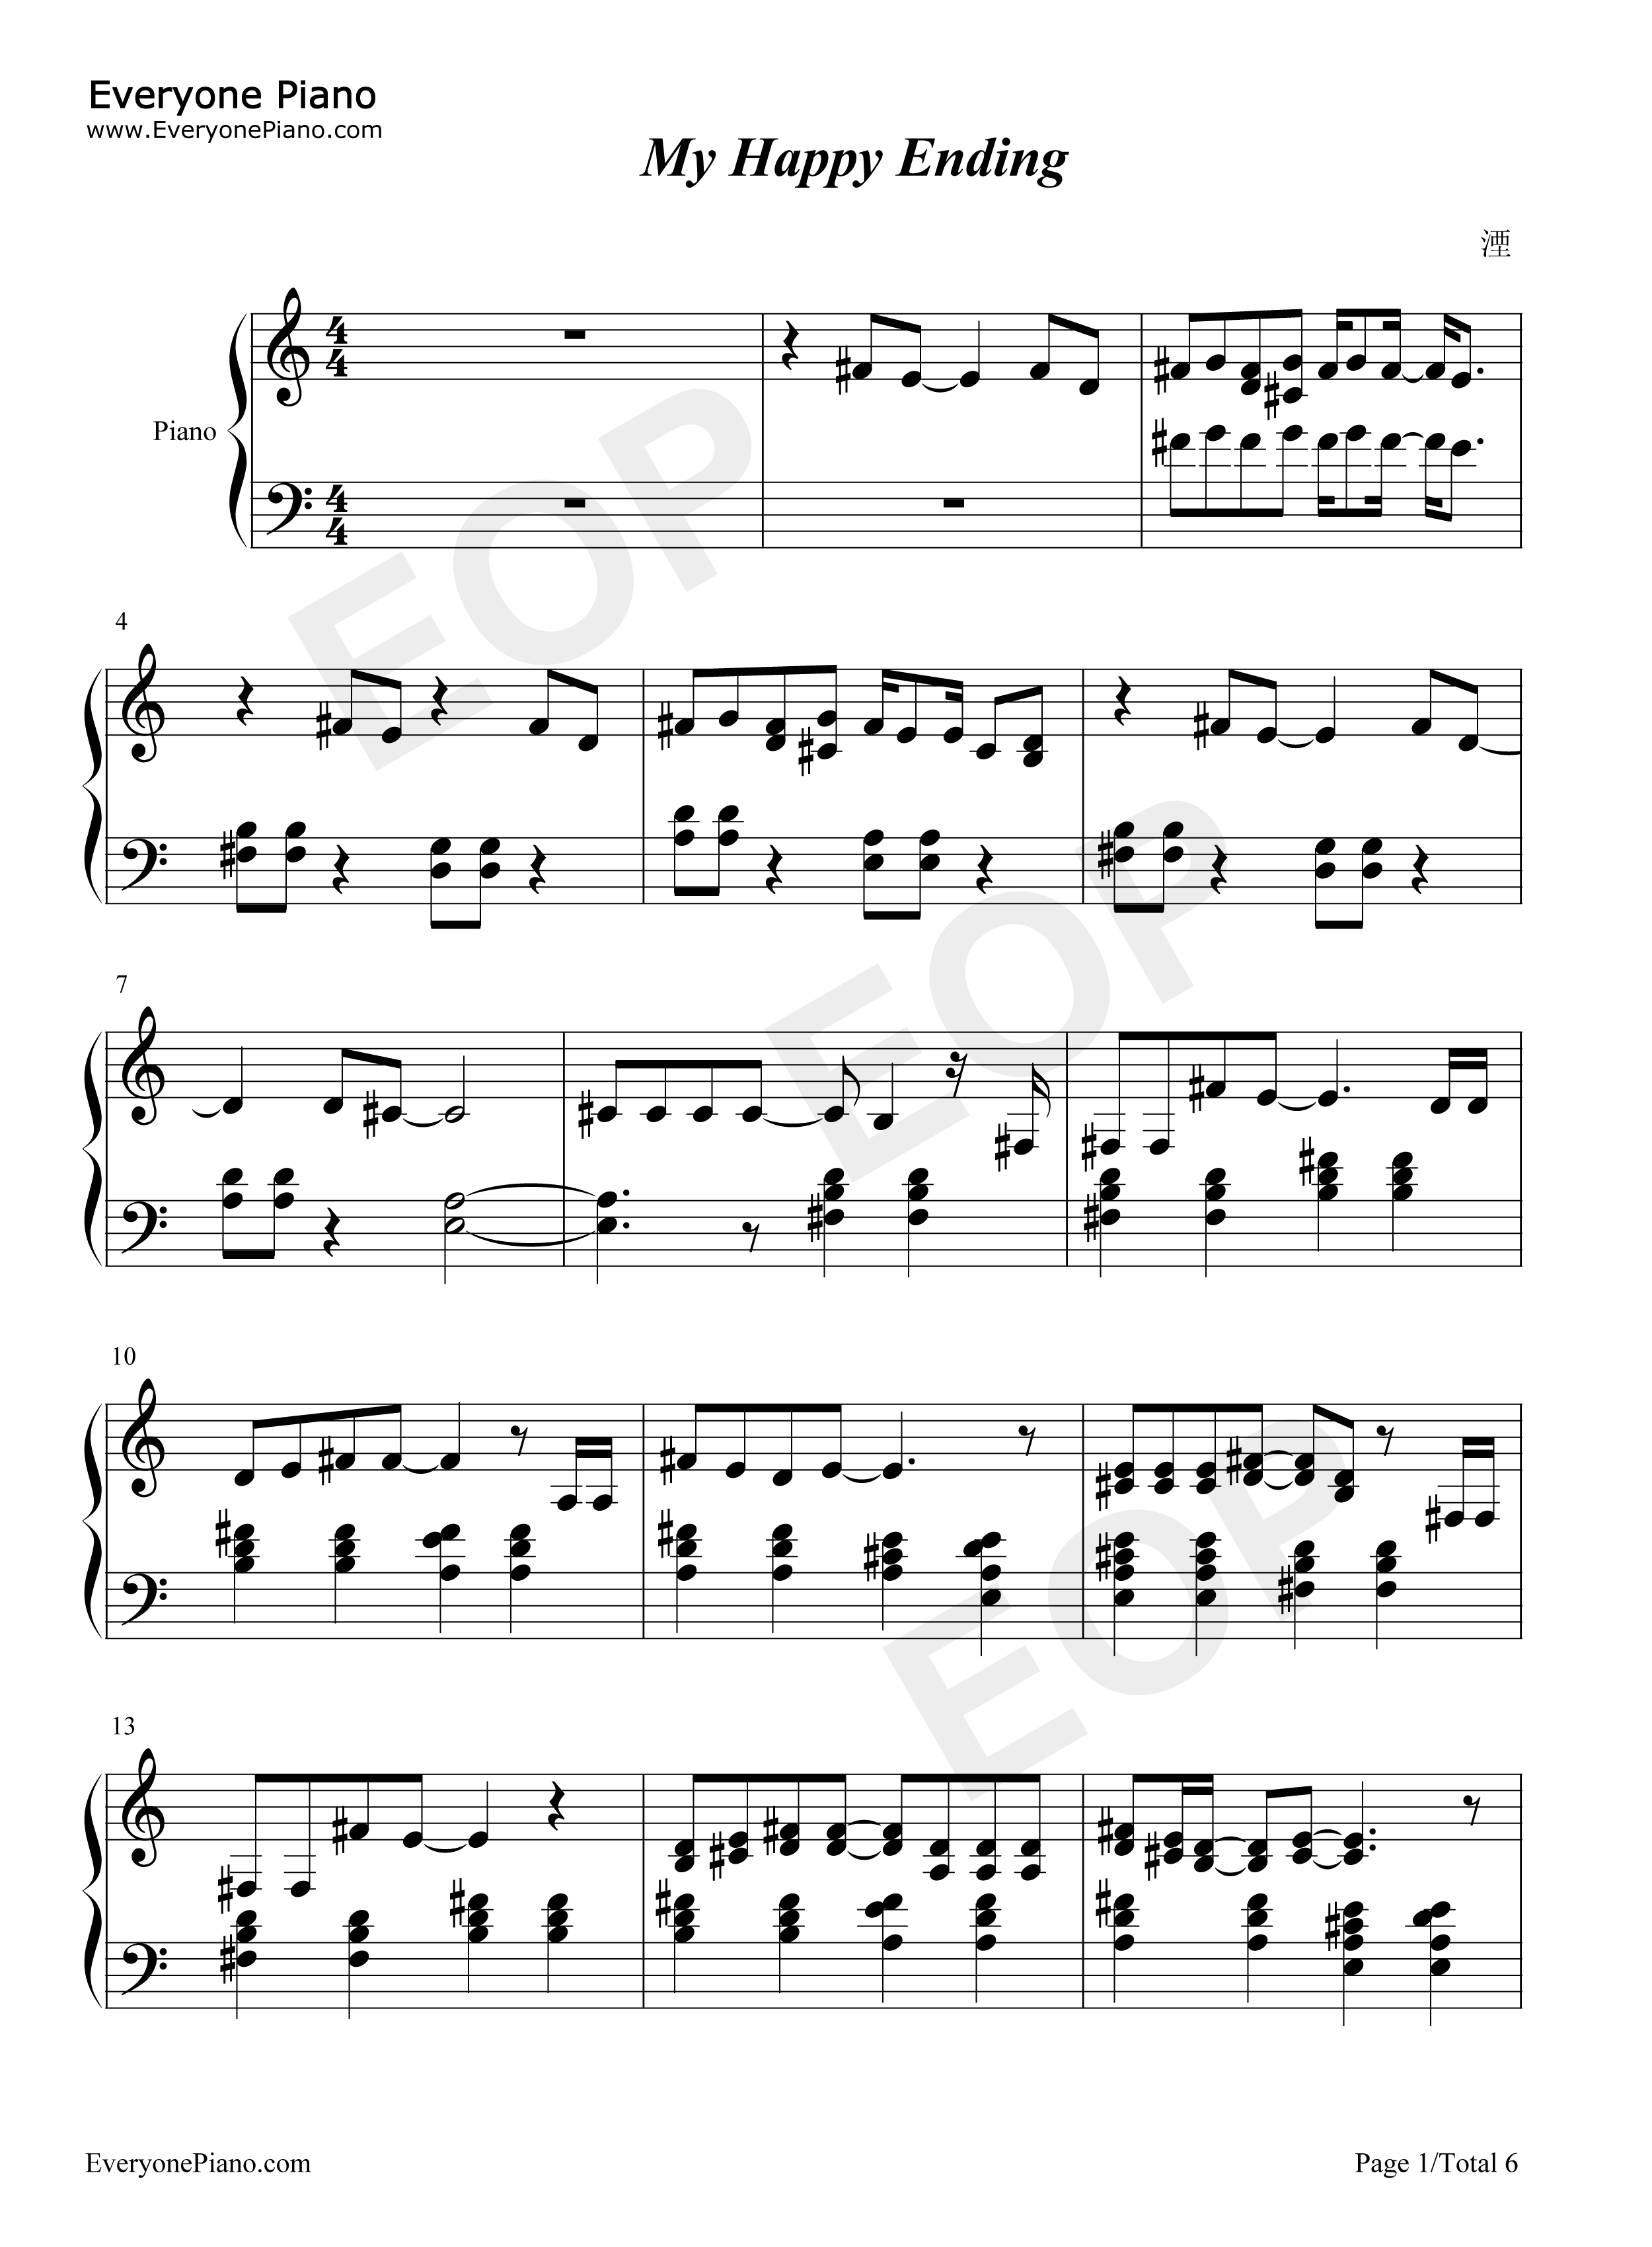 My happy ending avril lavigne stave preview 1 free piano sheet listen now print sheet my happy ending avril lavigne stave preview 1 hexwebz Gallery